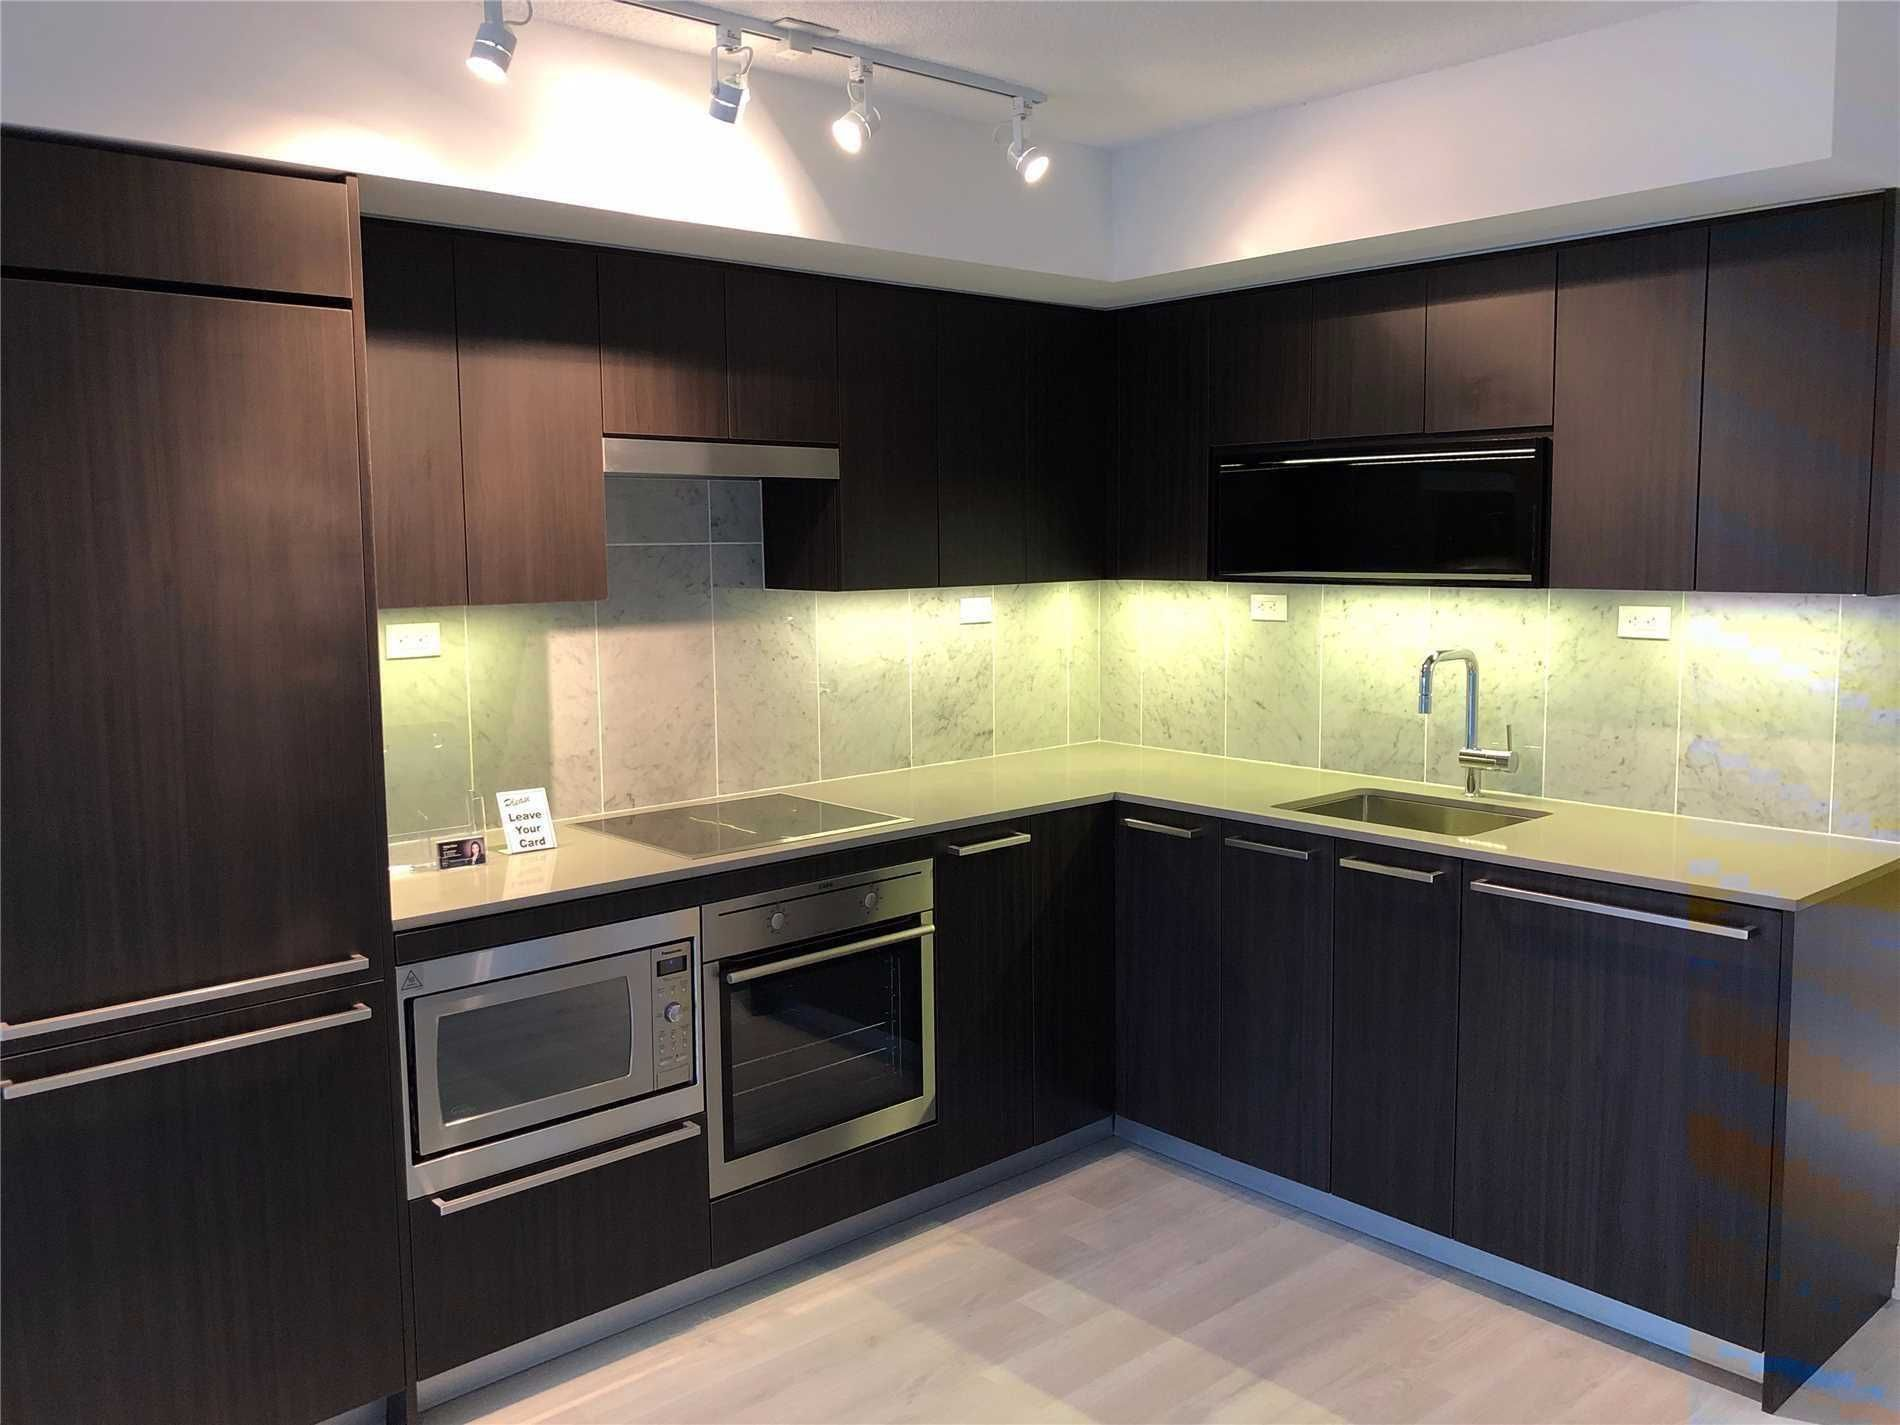 70 Queens Wharf Rd, unit 709 for rent in Toronto - image #2